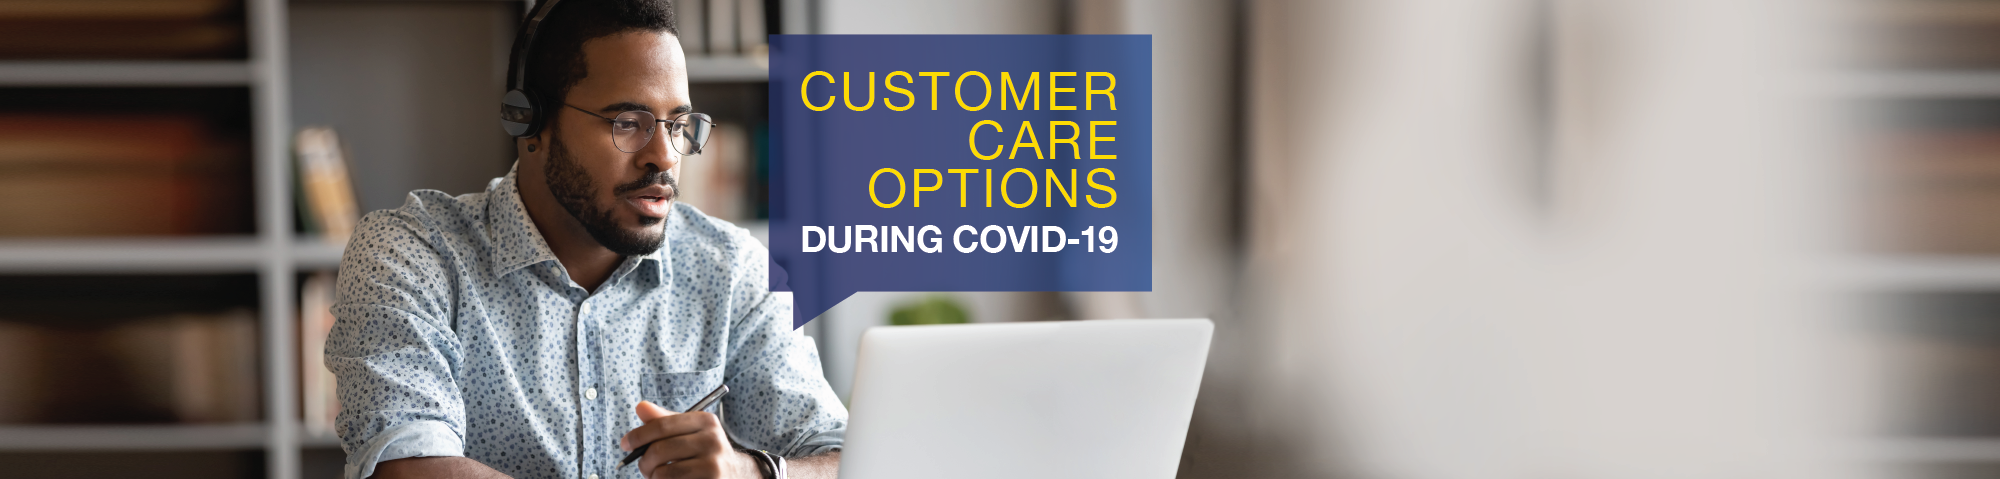 Banner promoting customer care options during COVID-19